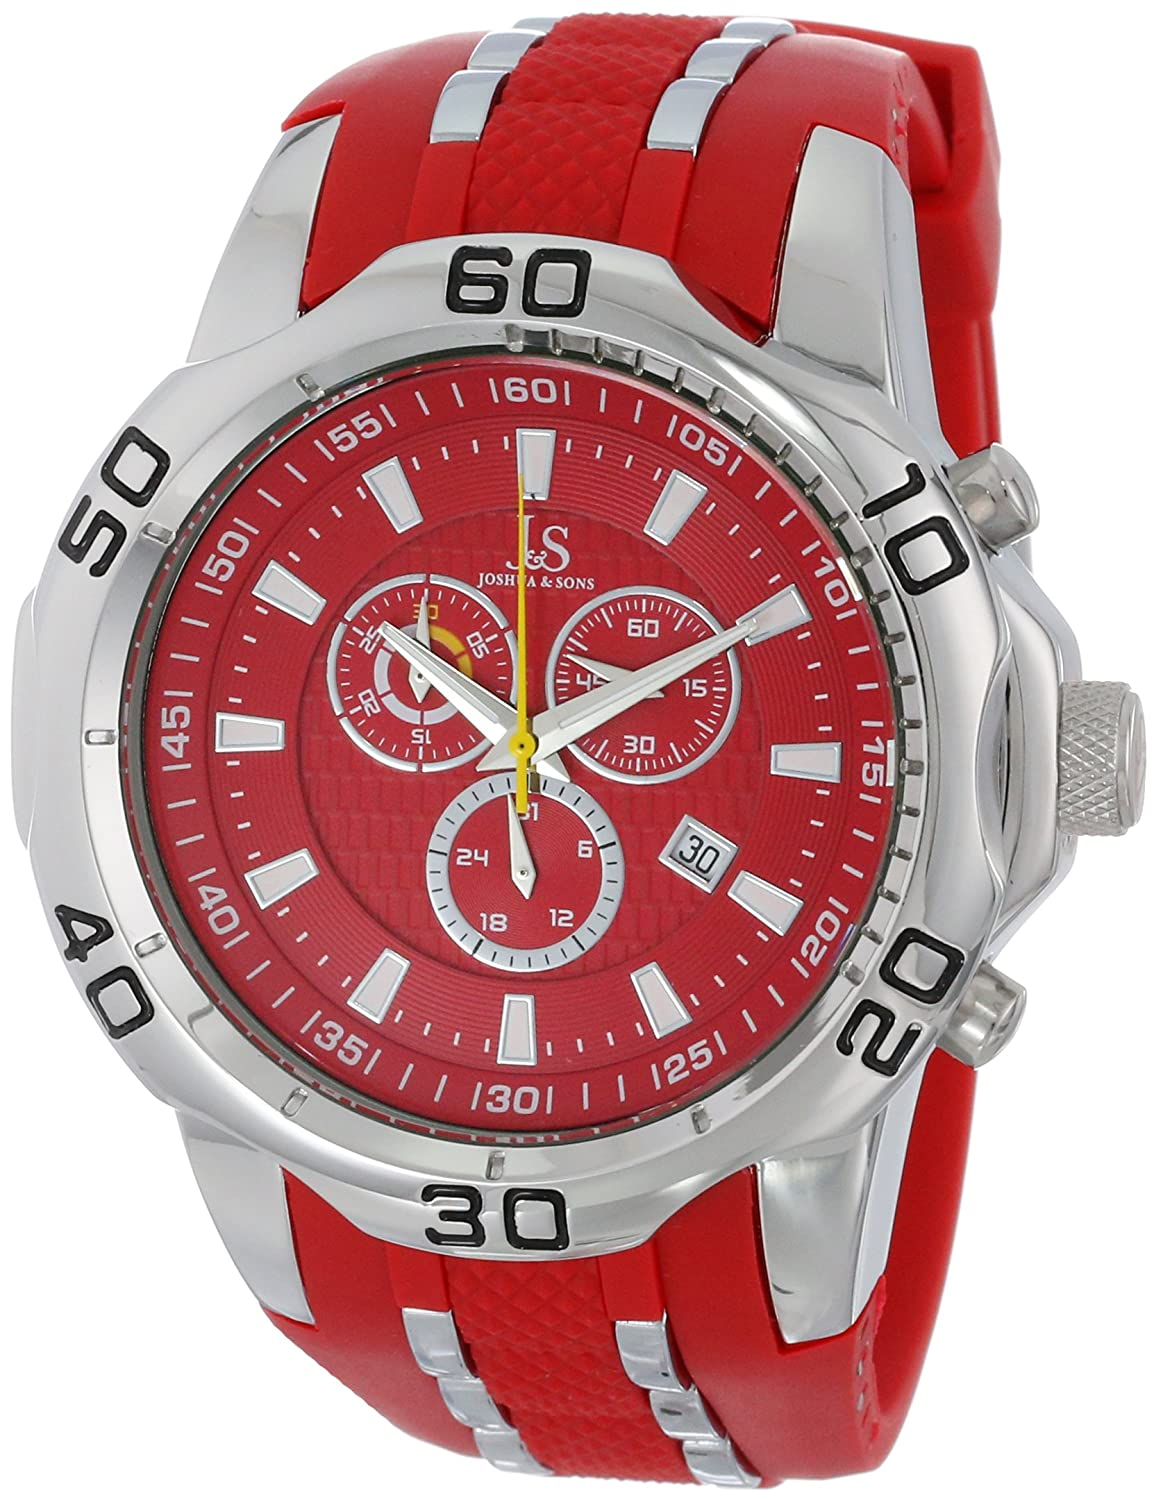 products red watch ar sa brm golf b c master watches r sq brand mens w m hands